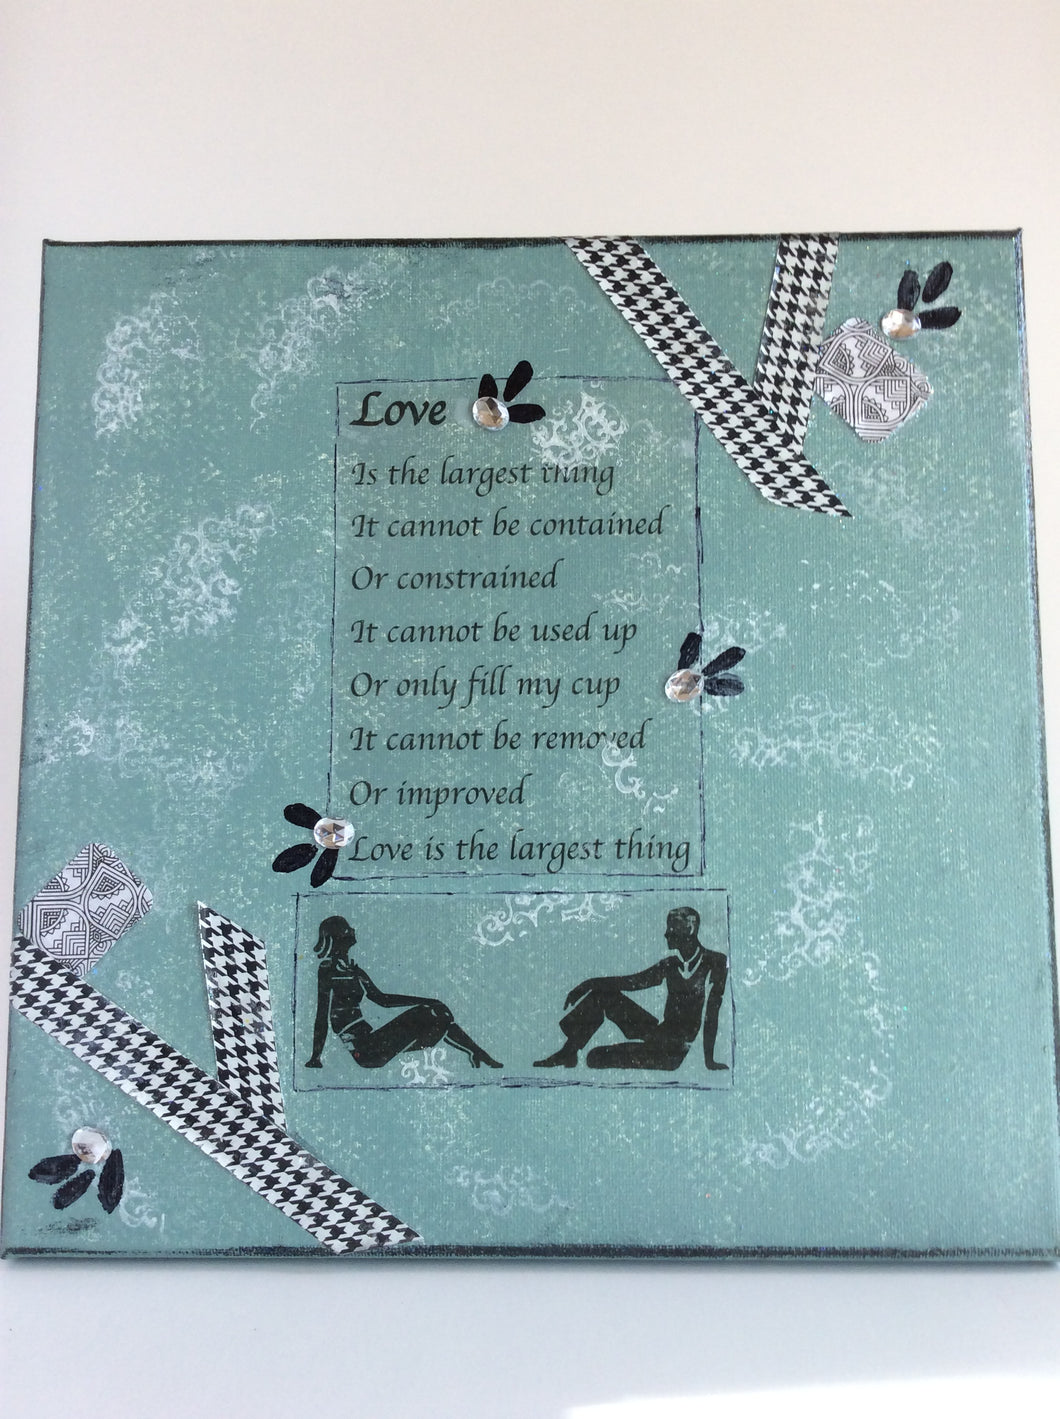 Love an original poem on canvas from poempieces.com in shadow teal